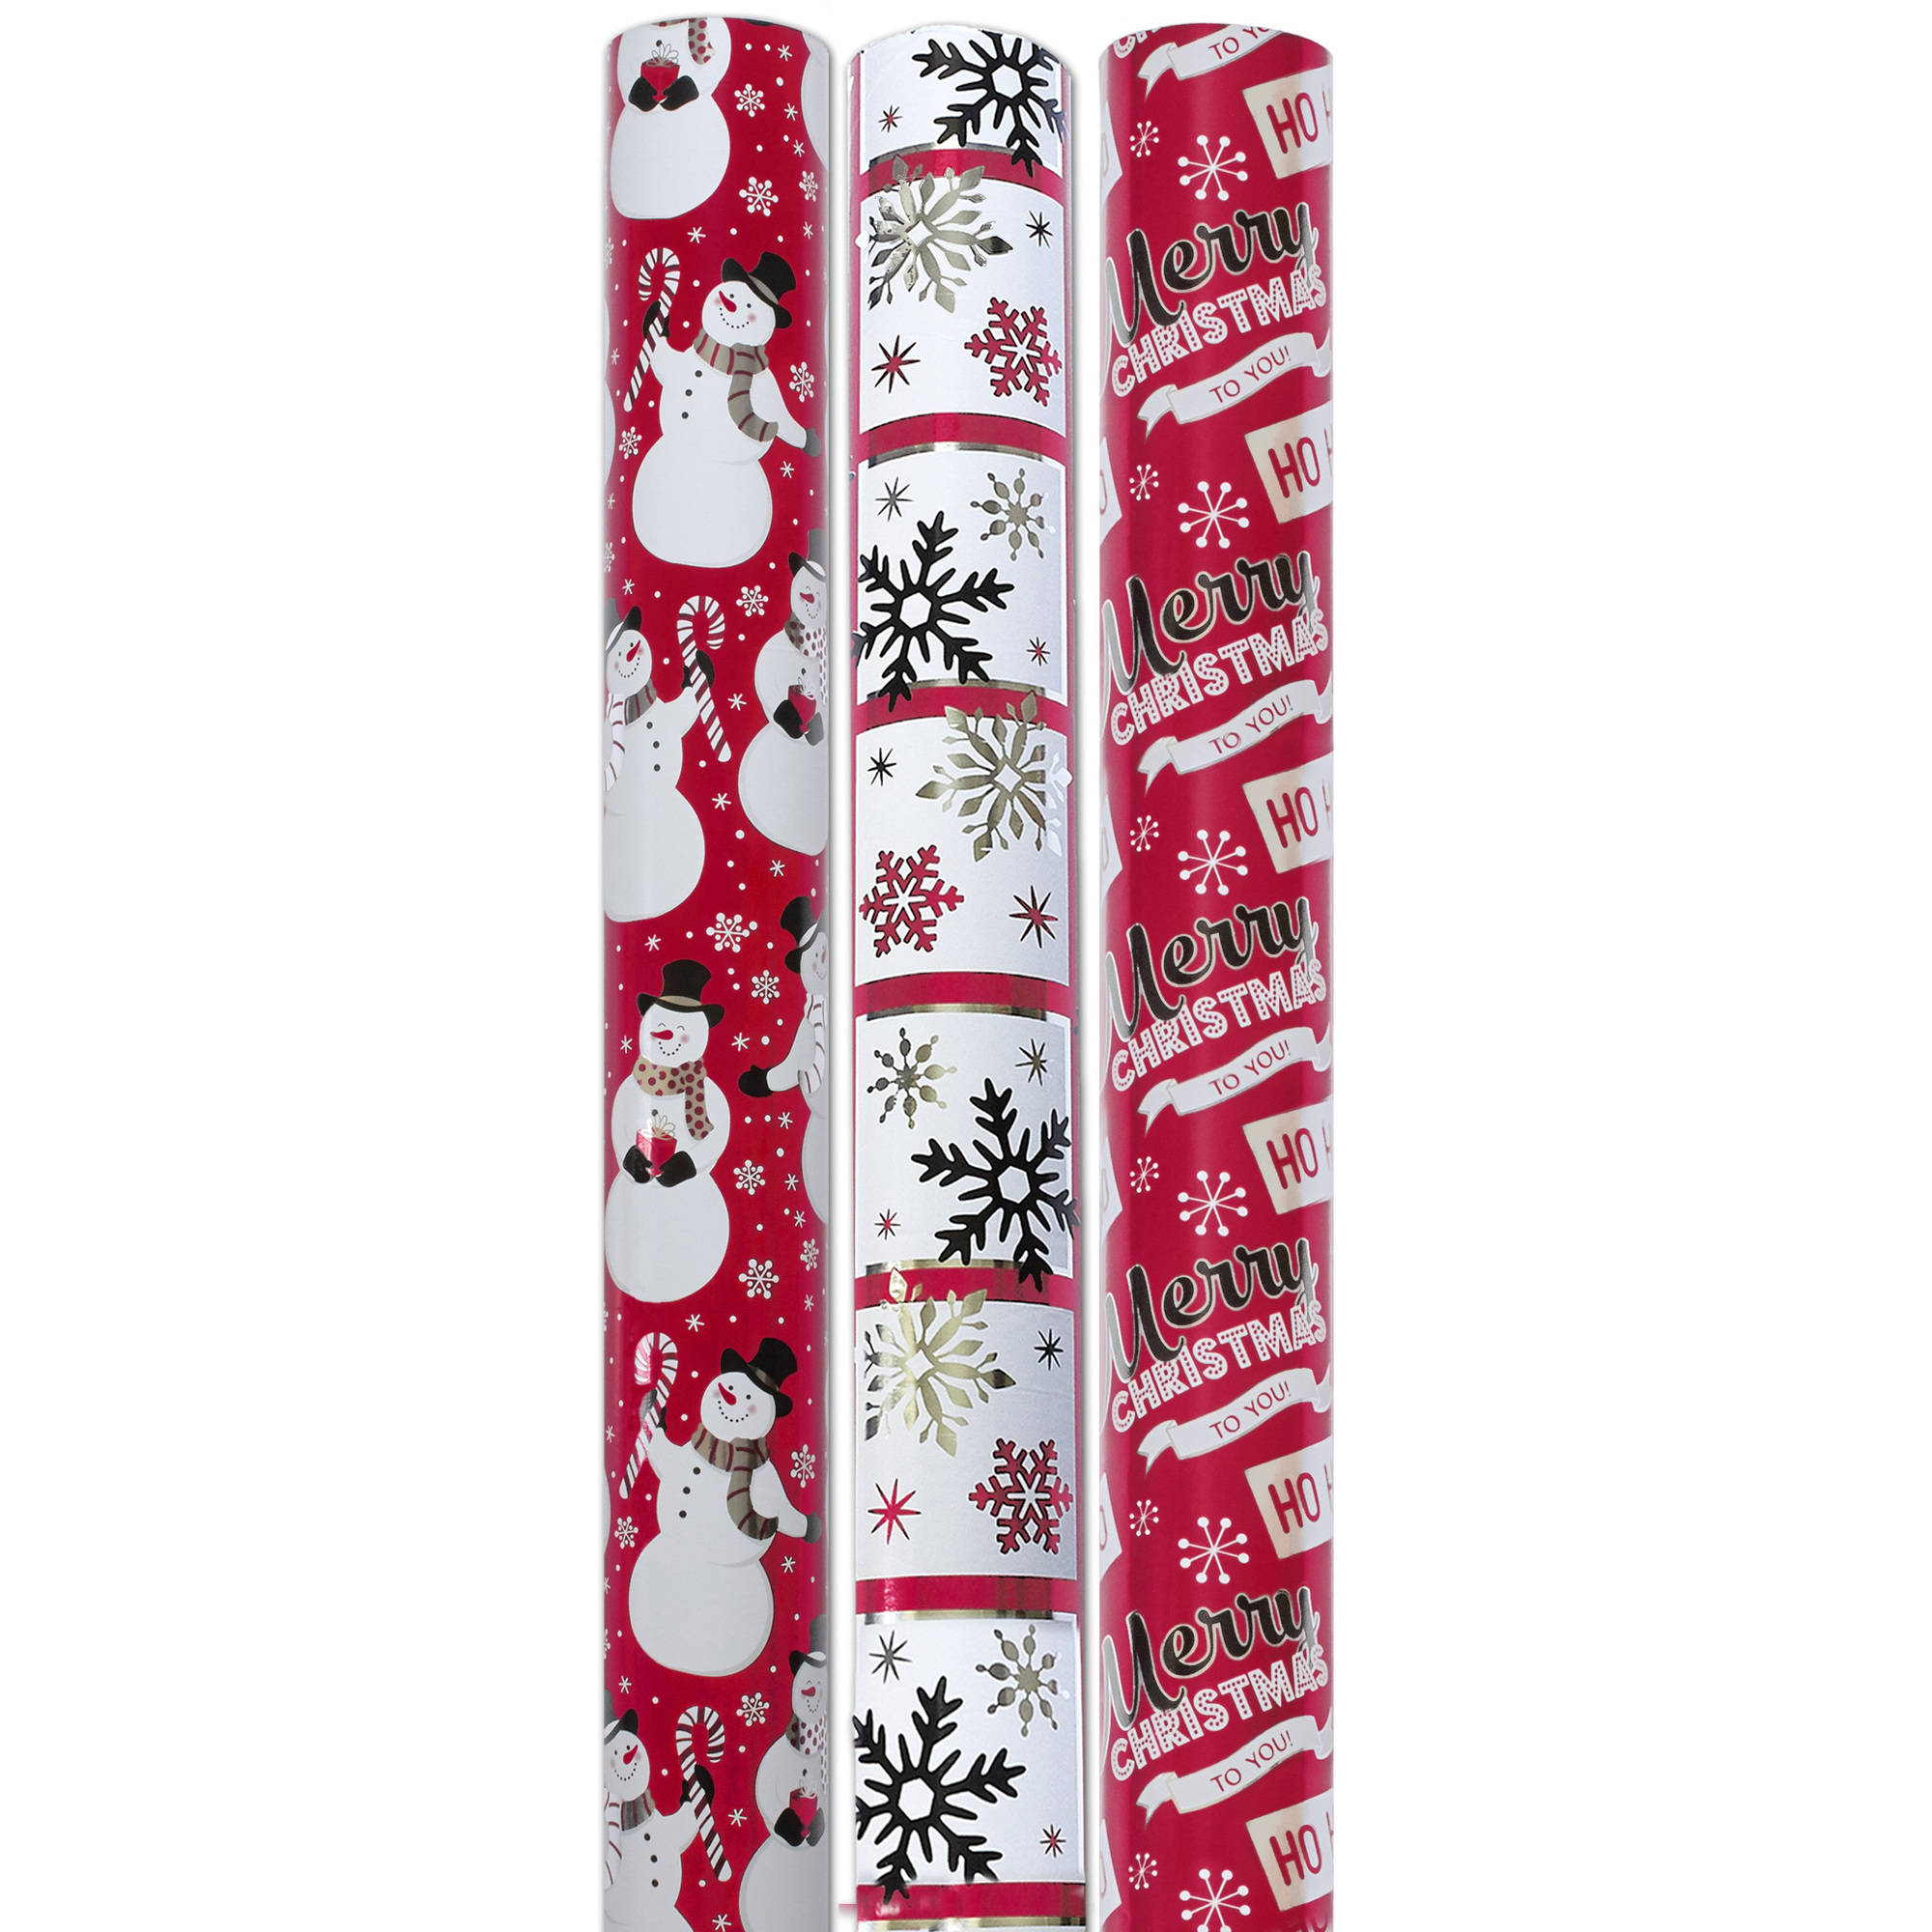 "Holiday Time 30"" Wide 3 Rolls Reversible Foil Gift Wrapping Paper, Red/Black"